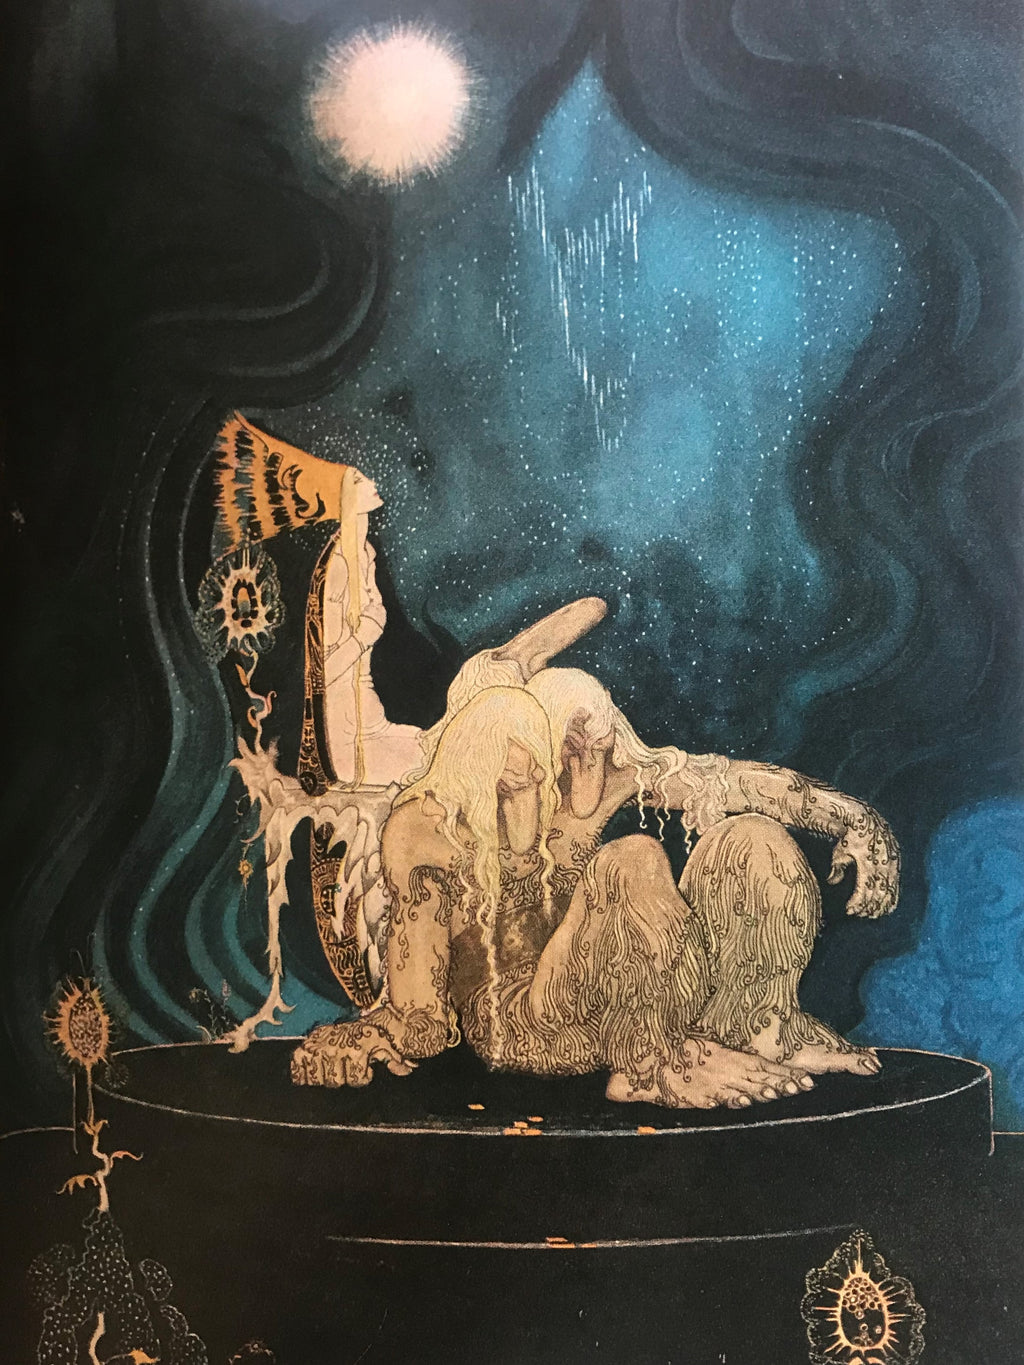 Disney Illustrator before Disney… Kay Nielsen's book East of the Sun and West of the Moon